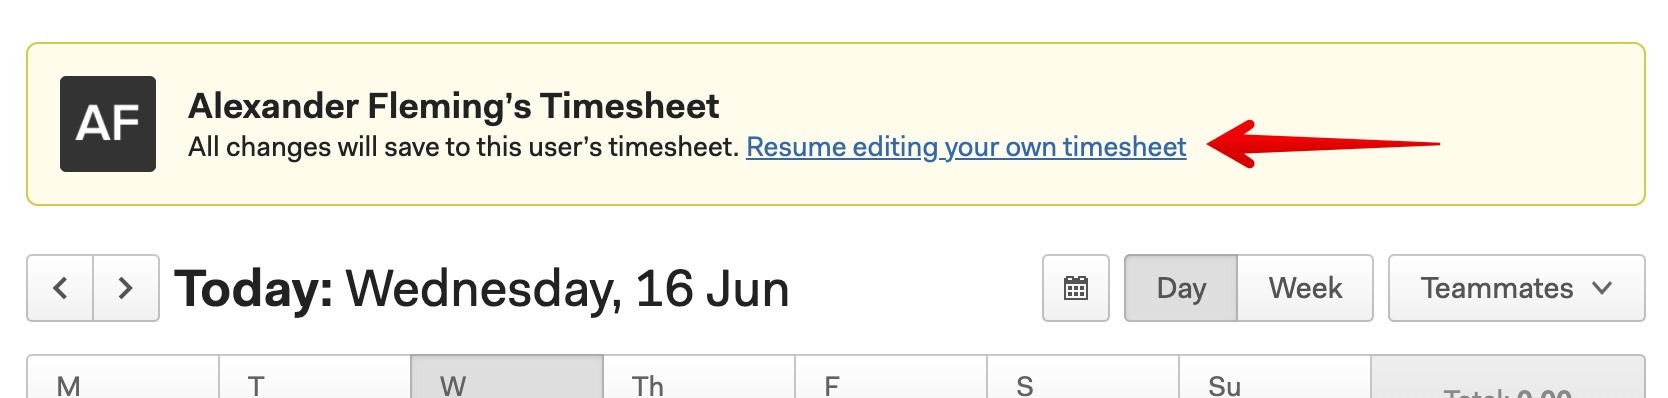 Resume editing your own timesheet